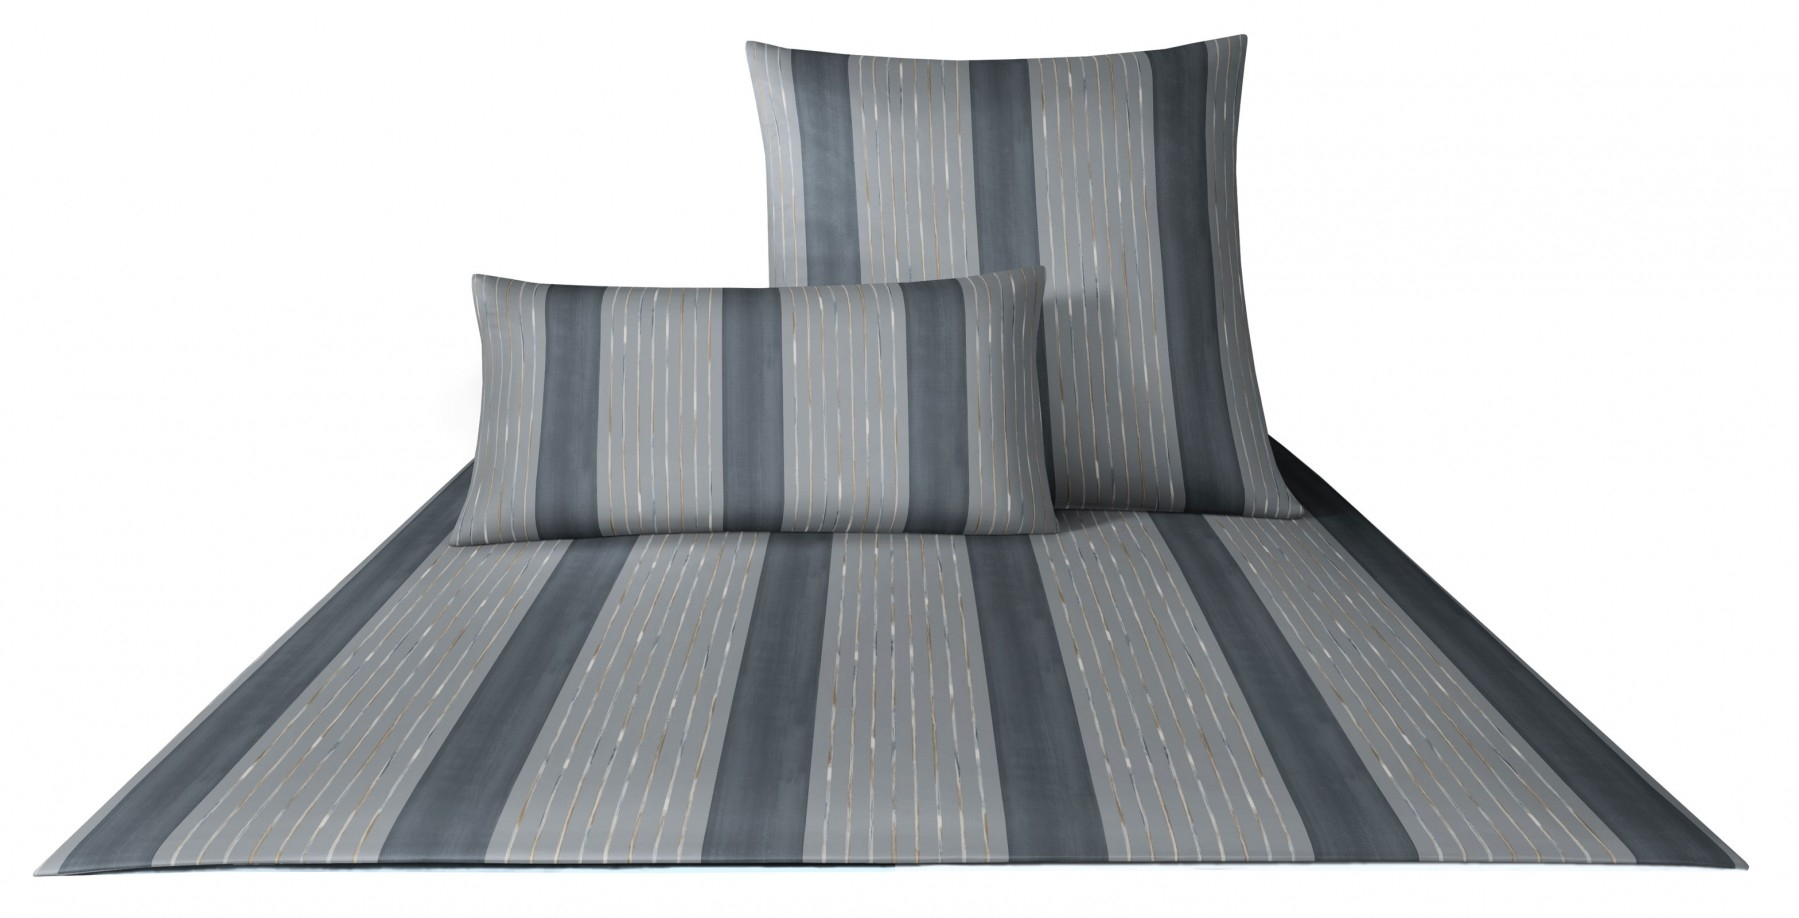 Bettwäsche - Joop Mako Satin Bettwäsche Plaza Stripes 155x220 80x80 4052 9  - Onlineshop PremiumShop321